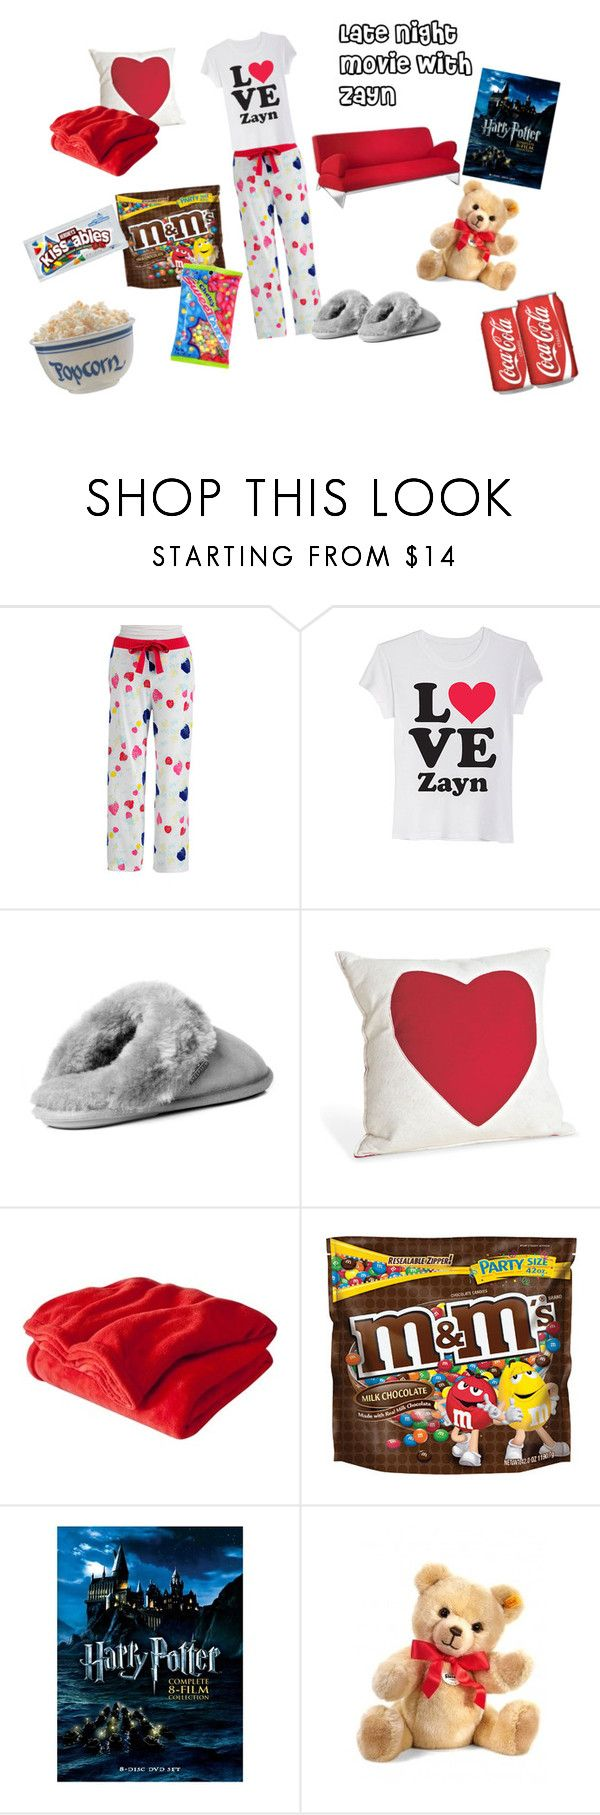 """Late Night Movie with Zayn"" by chickenncheese ❤ liked on Polyvore featuring Lord & Taylor, Just Sheepskin, Room Essentials, Hershey's, zayn malik, naf naf, pajamas and one directin"